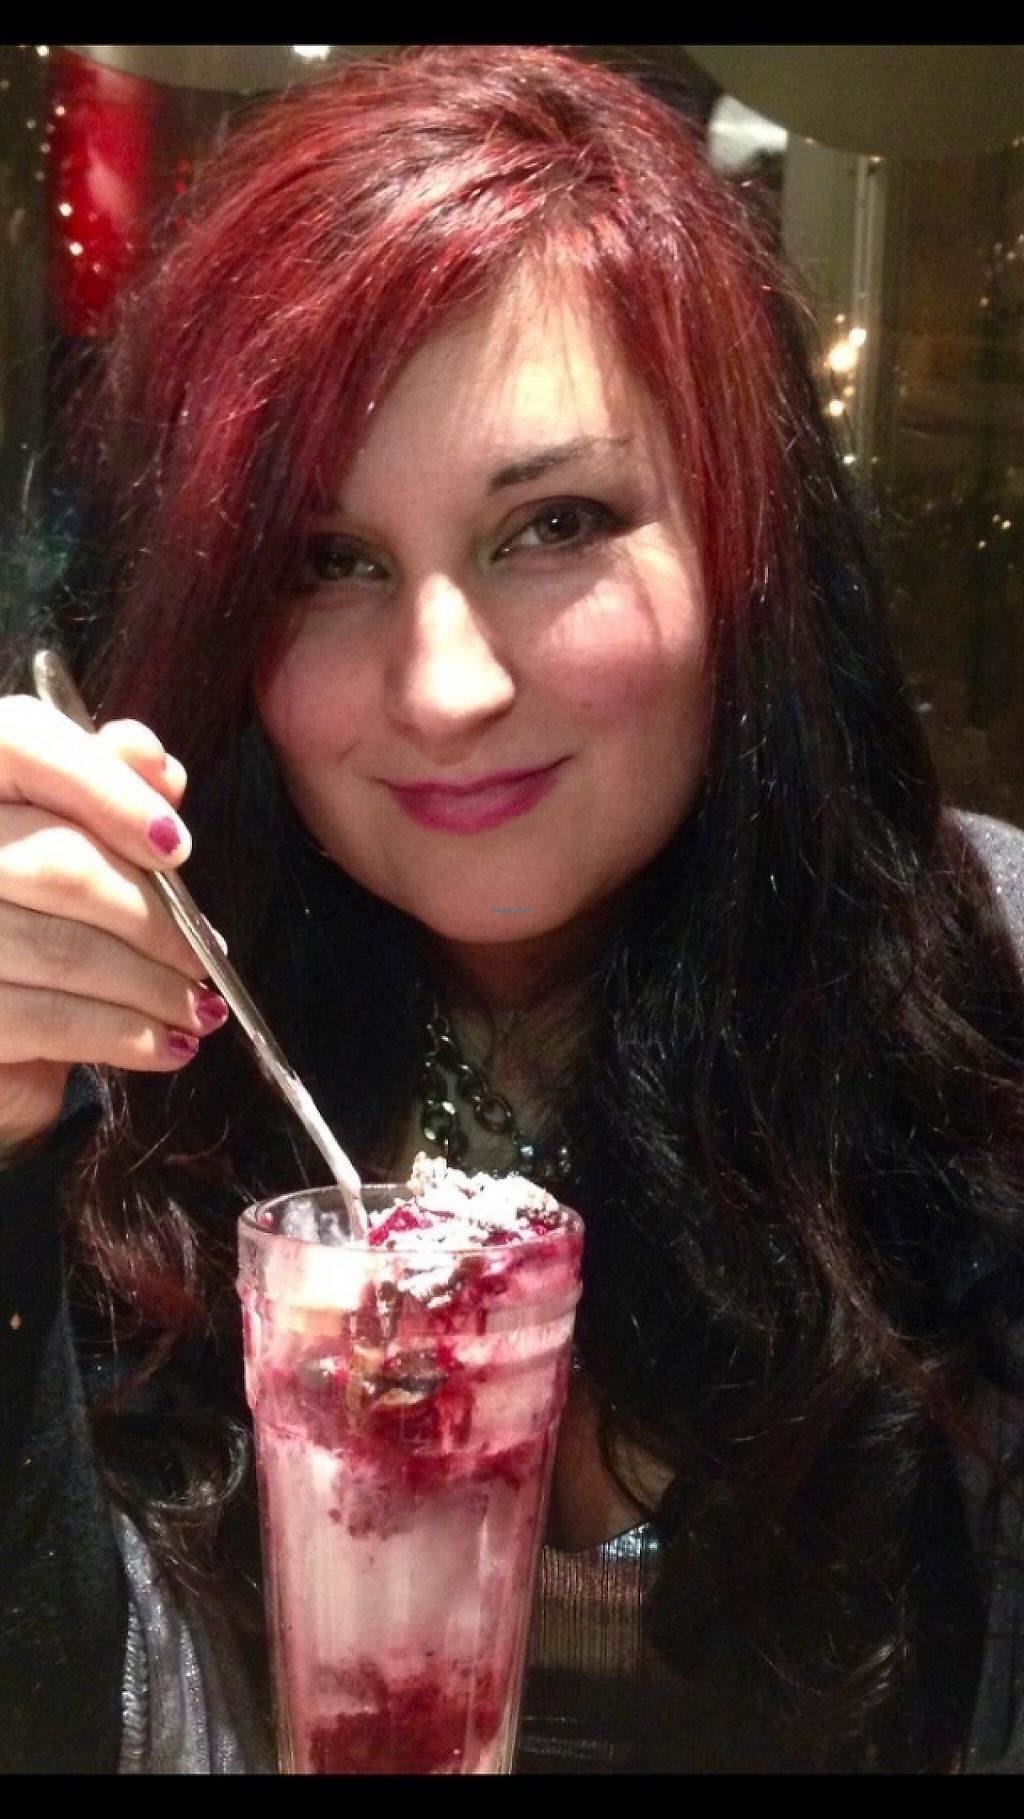 """Photo of Liberty Grill  by <a href=""""/members/profile/Tamasin"""">Tamasin</a> <br/>Enjoying that lovely vegan ice cream option <br/> May 18, 2017  - <a href='/contact/abuse/image/92266/260091'>Report</a>"""